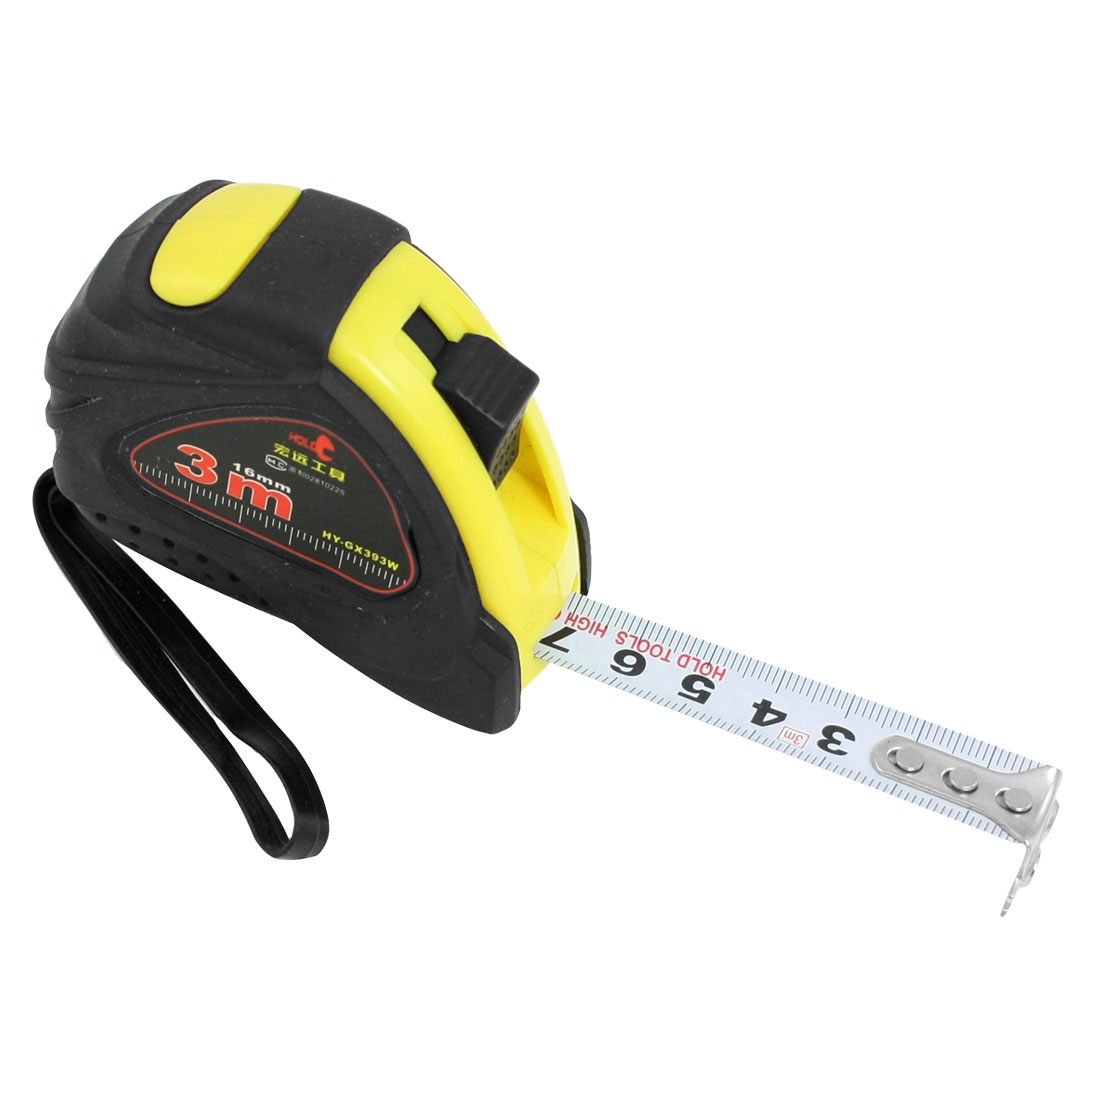 "Unique Bargains 5/8"" x 3 Meters Self Retract Flexible Tape Measure Ruler Black Yellow"